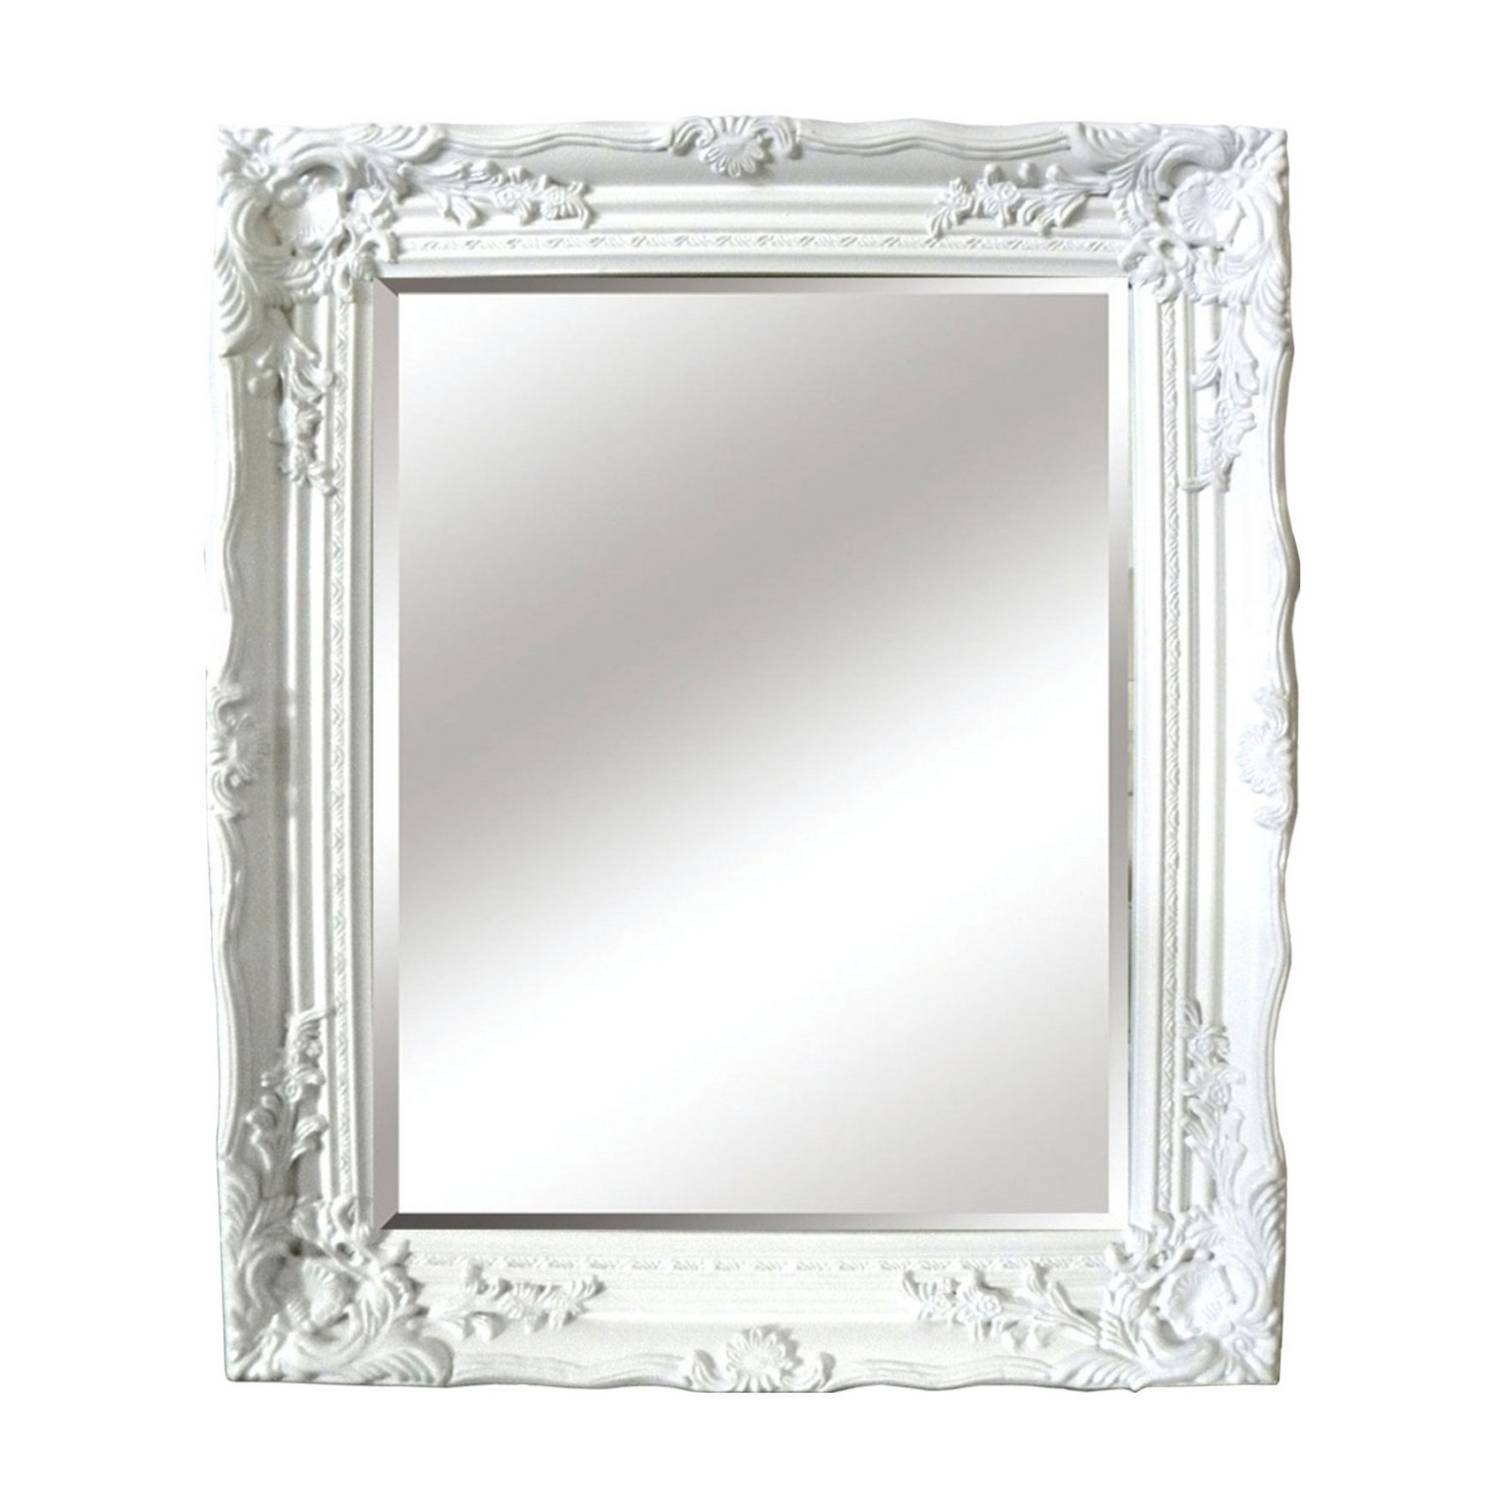 Antique Ornate Mirror Pertaining To Antique Ornate Mirrors (View 5 of 25)